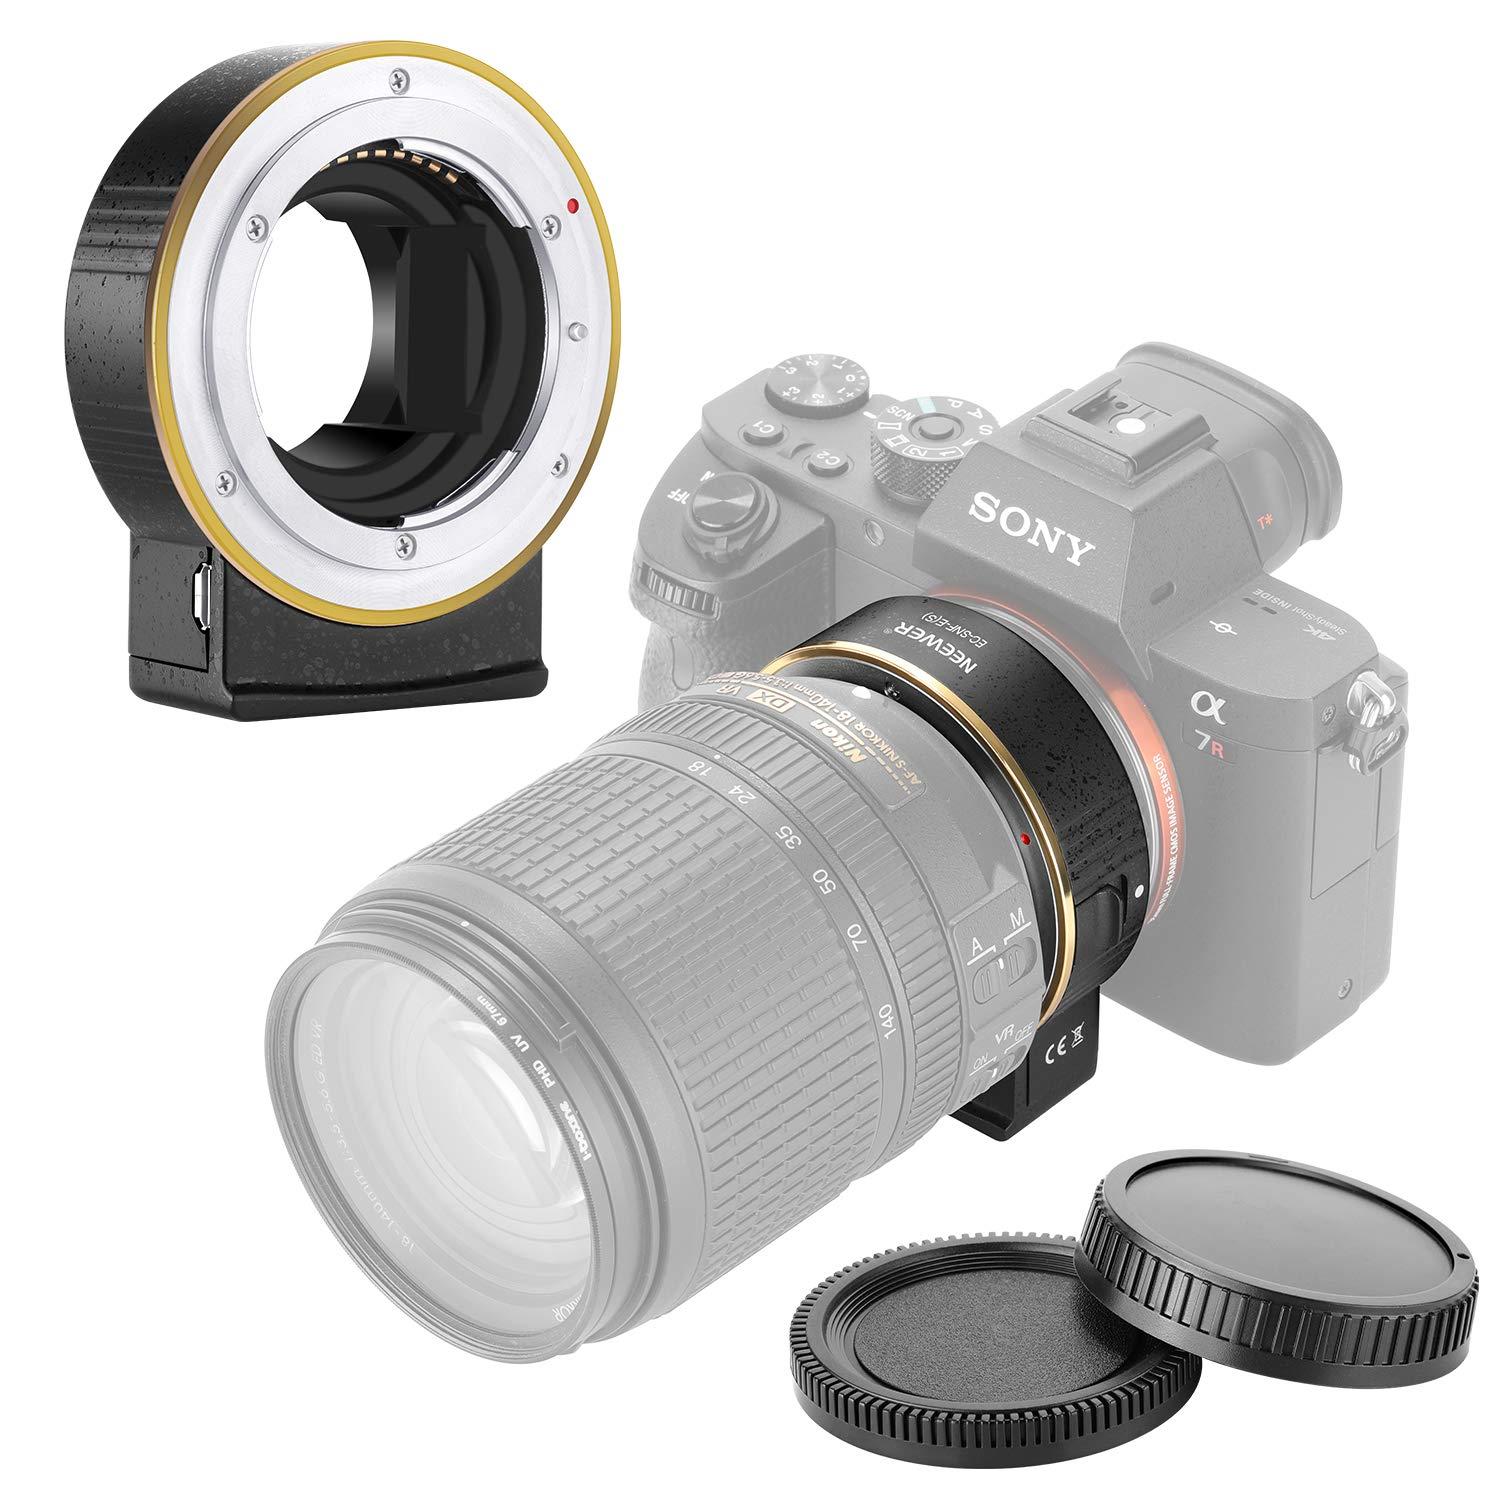 Neewer Electronic AF Lens Mount Adapter Auto Focus Aperture Control Compatible with Nikon f Lens to Sony E-Mount Cameras for Sony A9/A7R3/A7R2/A7M3/A7M2/A6500/A6300/A7R/A7S2/A7S/A7/NEX7/A6000/A5100 by Neewer